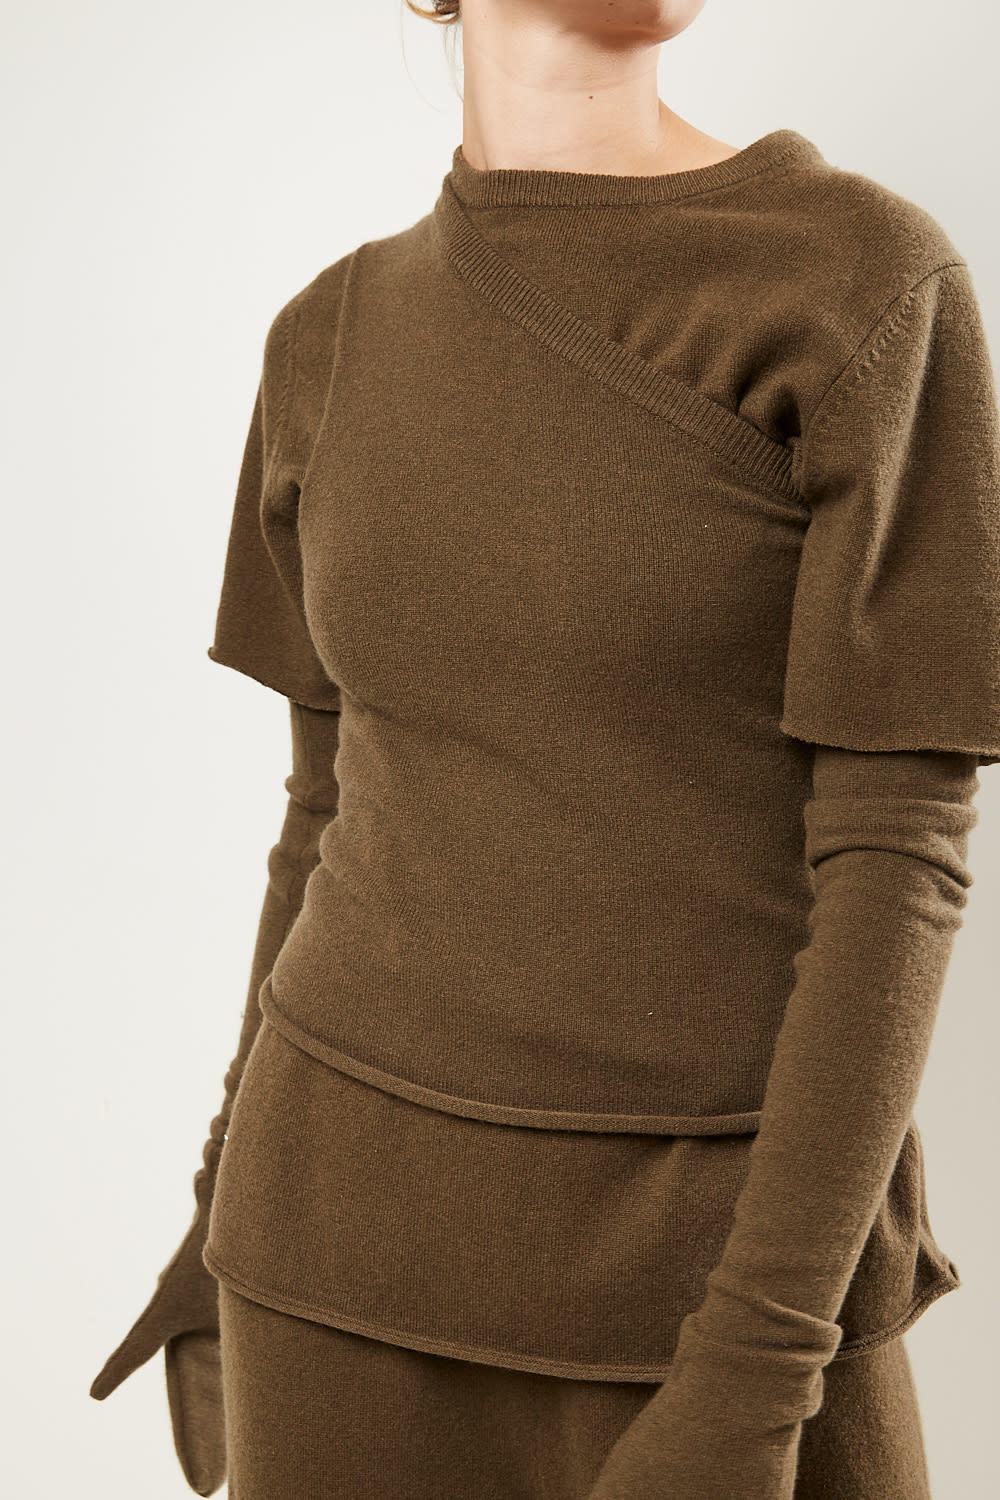 extreme cashmere No108 asymetric one shoulder top brown navy